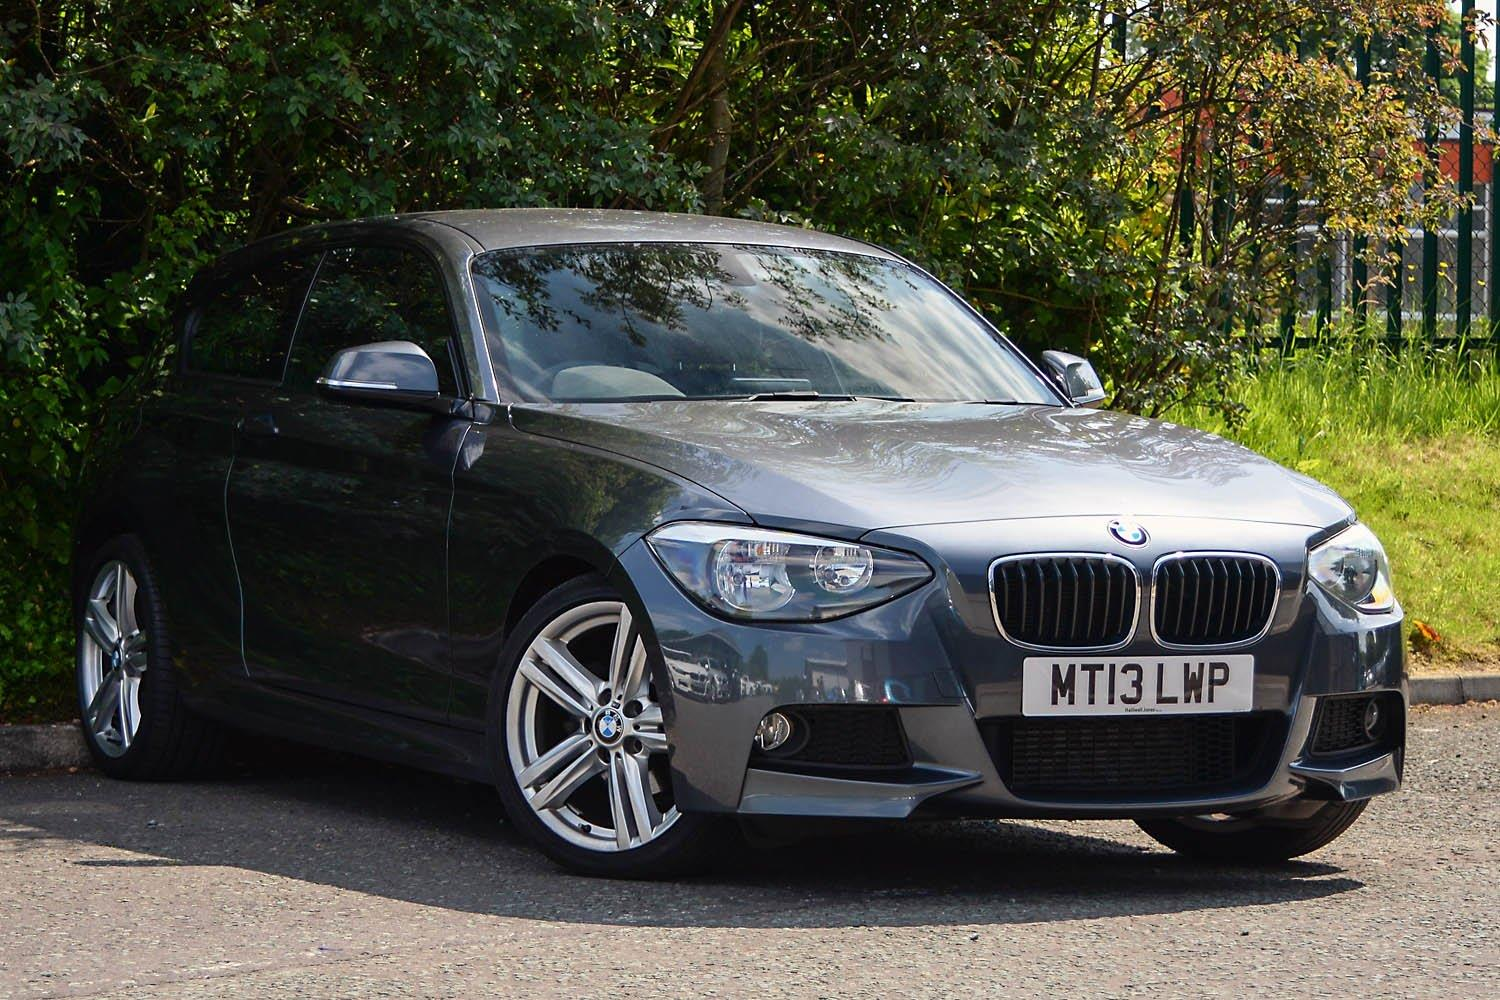 BMW 1 Series 3-door Sports Hatch MT13LWP - Image 10